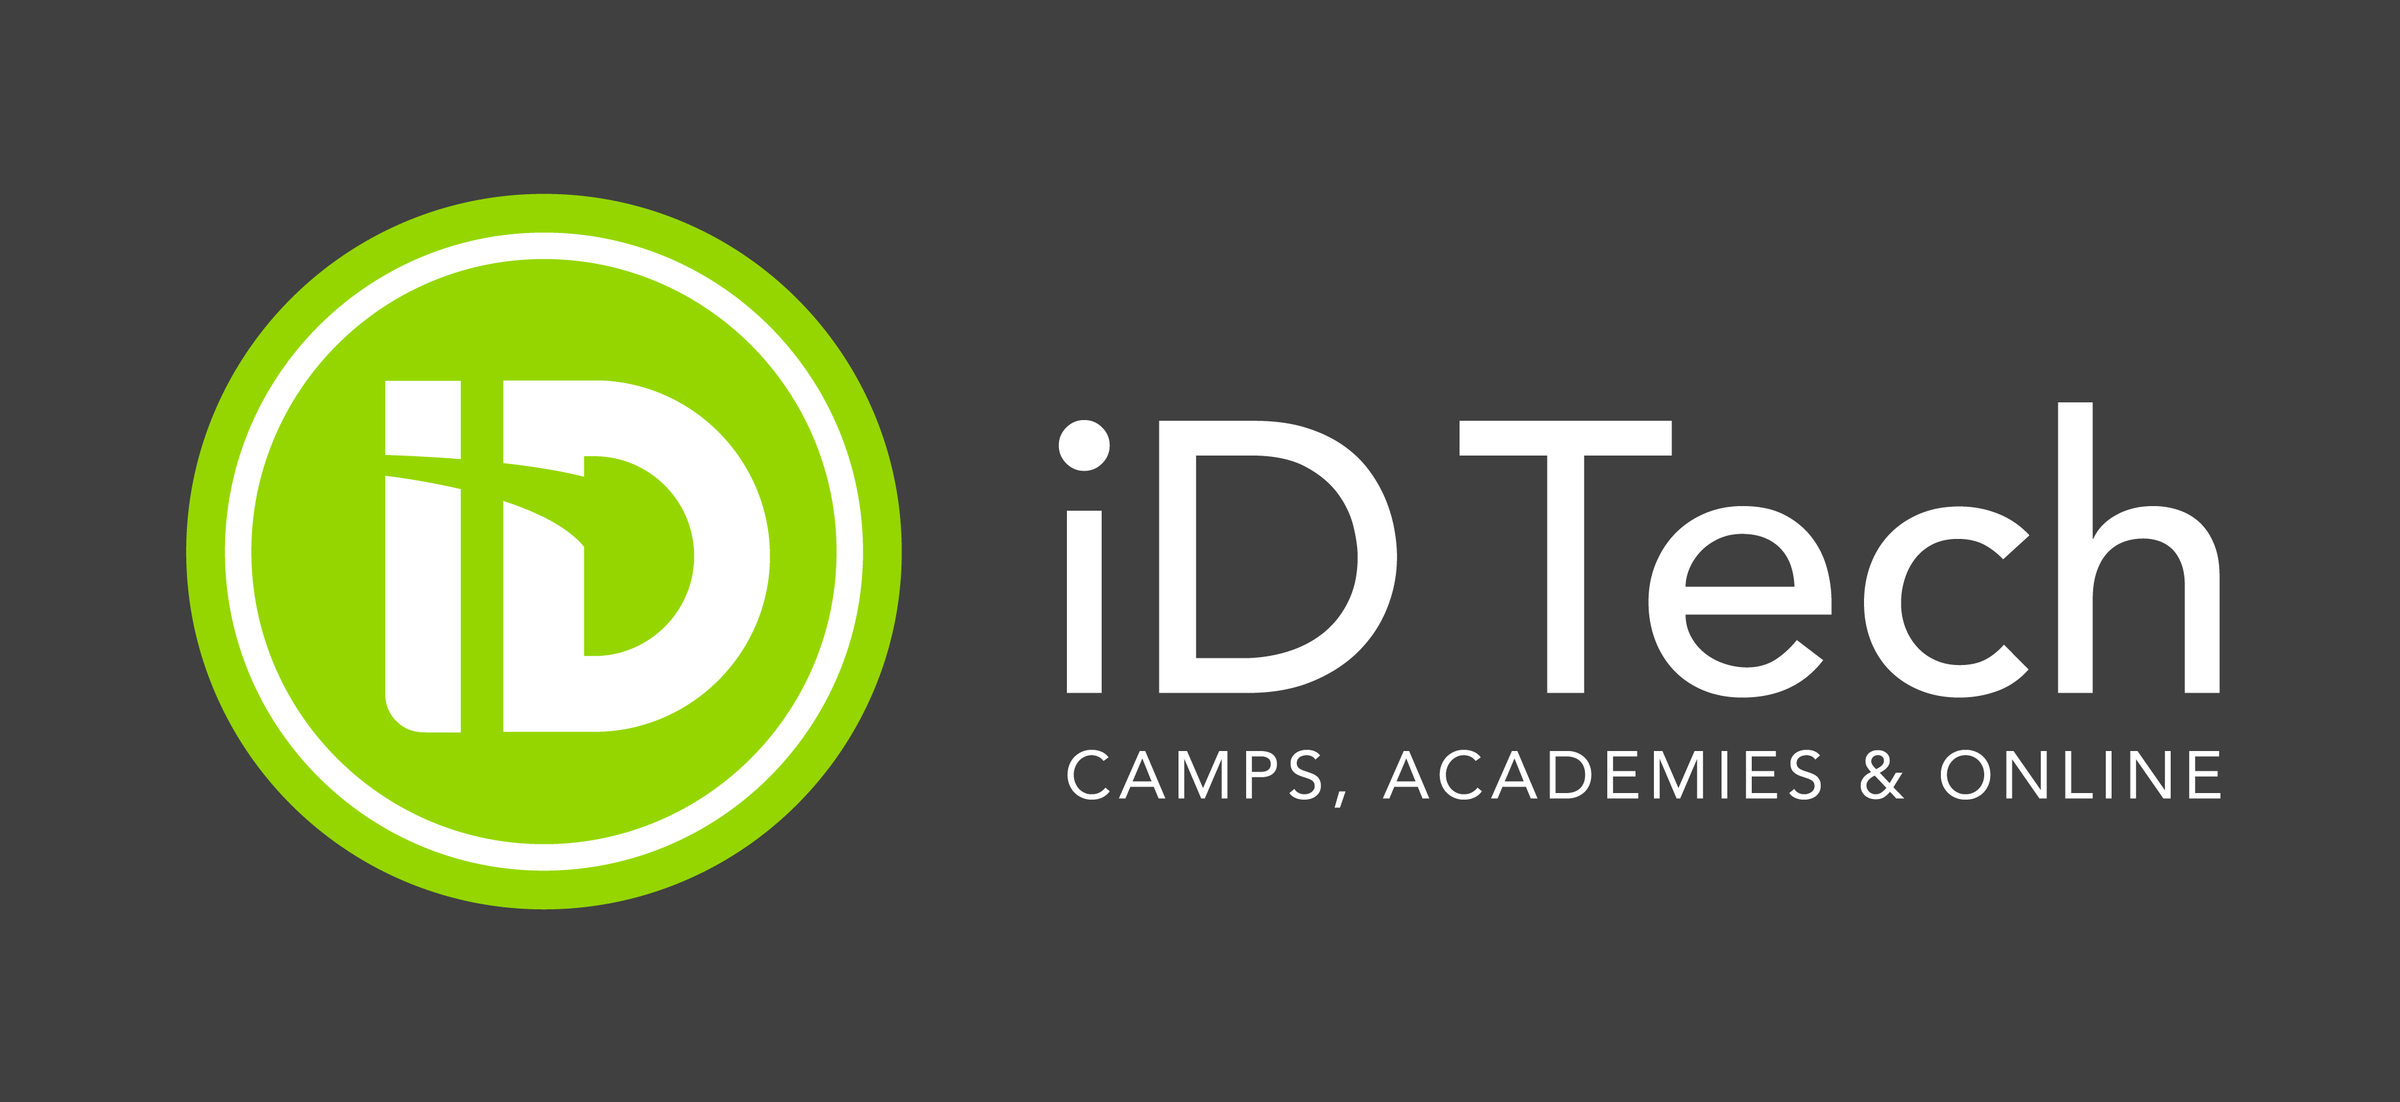 iD Tech Camps: #1 in STEM Education - Held at North Carolina State University